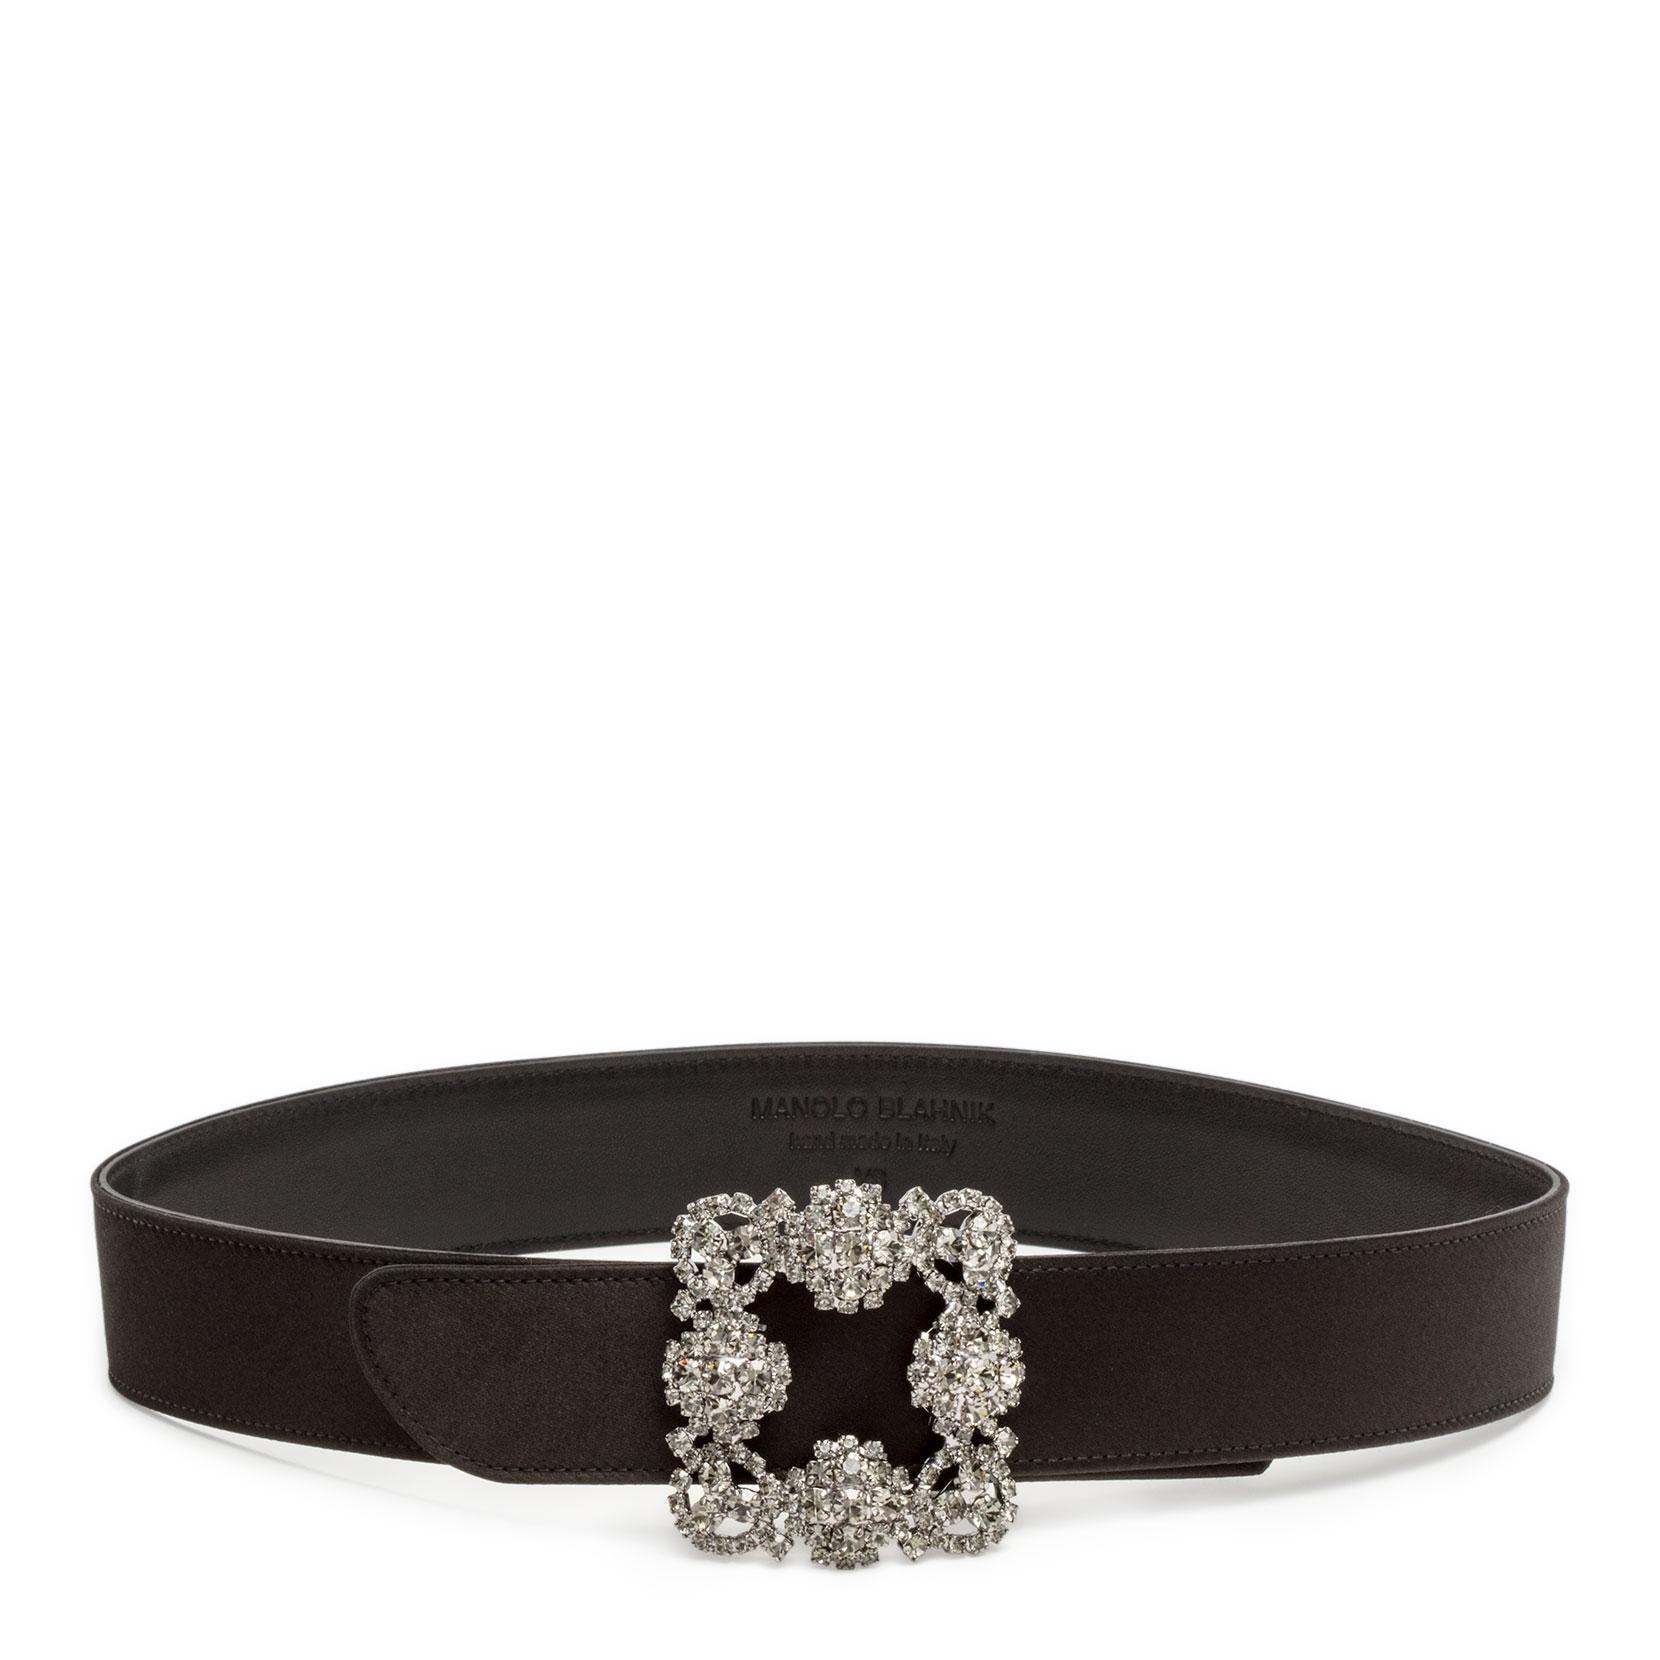 Hangisi black satin 35mm belt Manolo Blahnik 62pbt